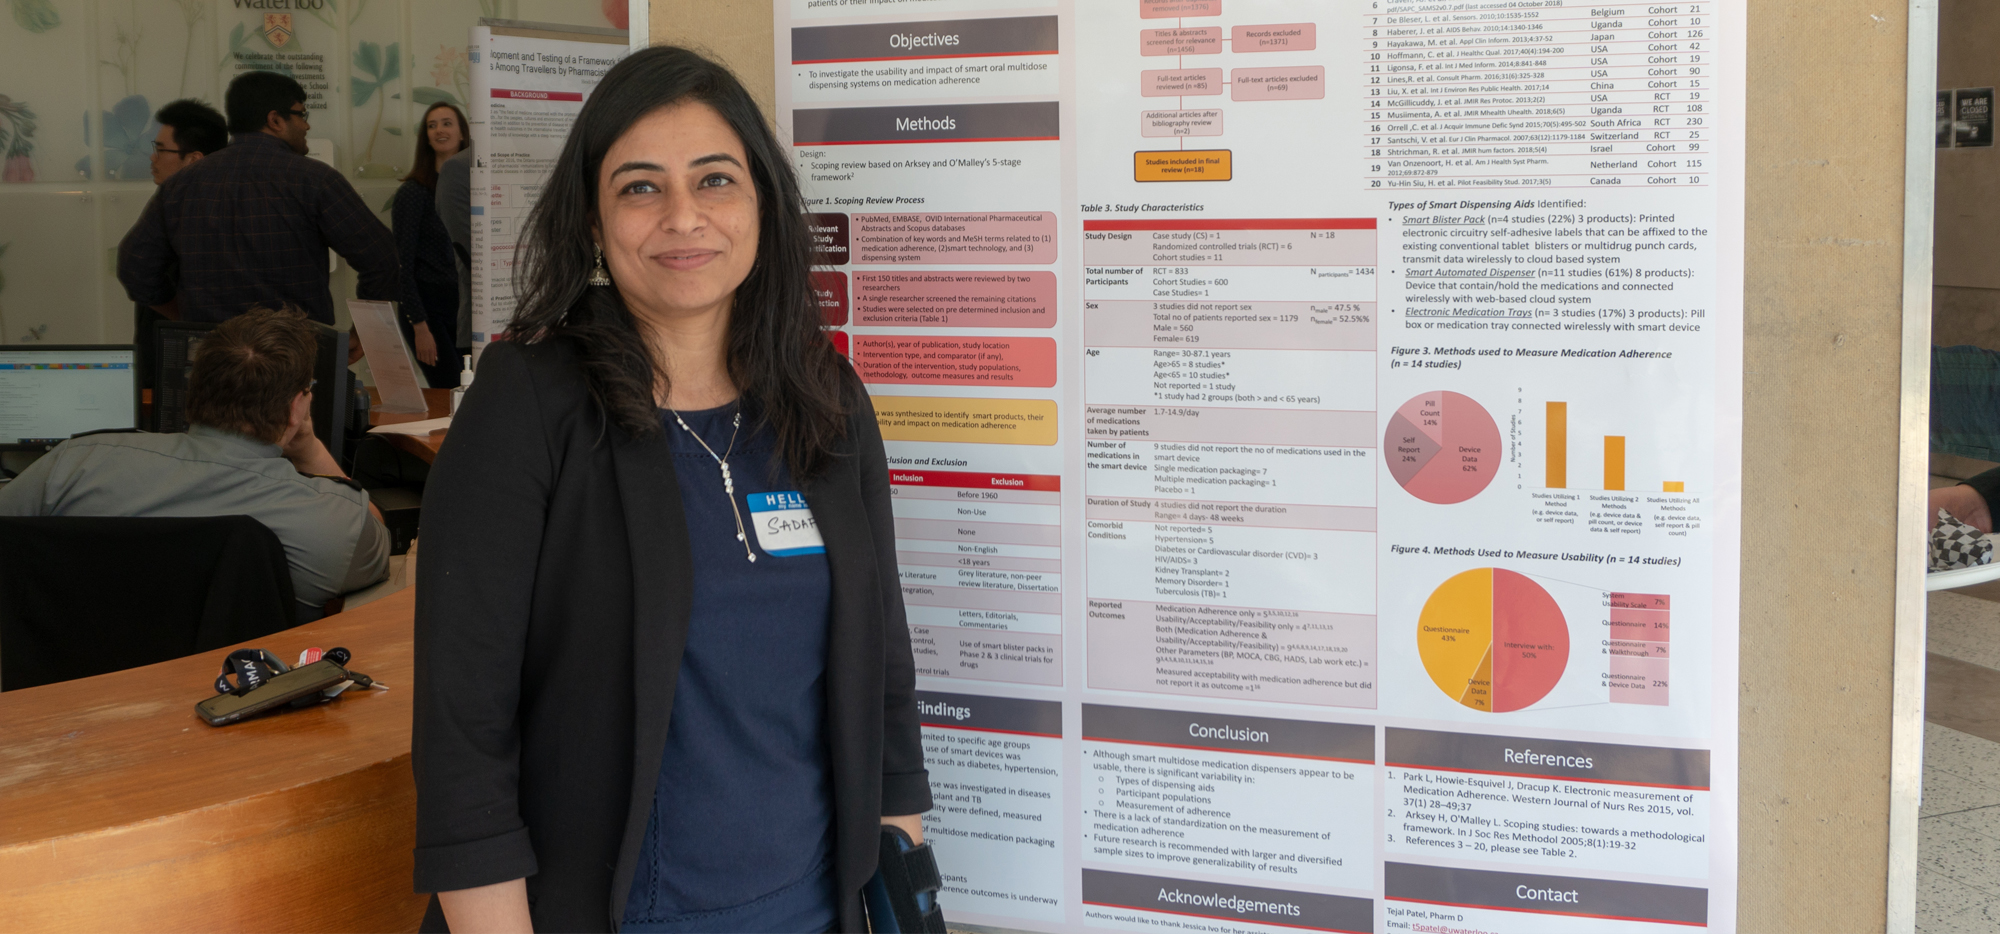 Sadaf in front of a research poster